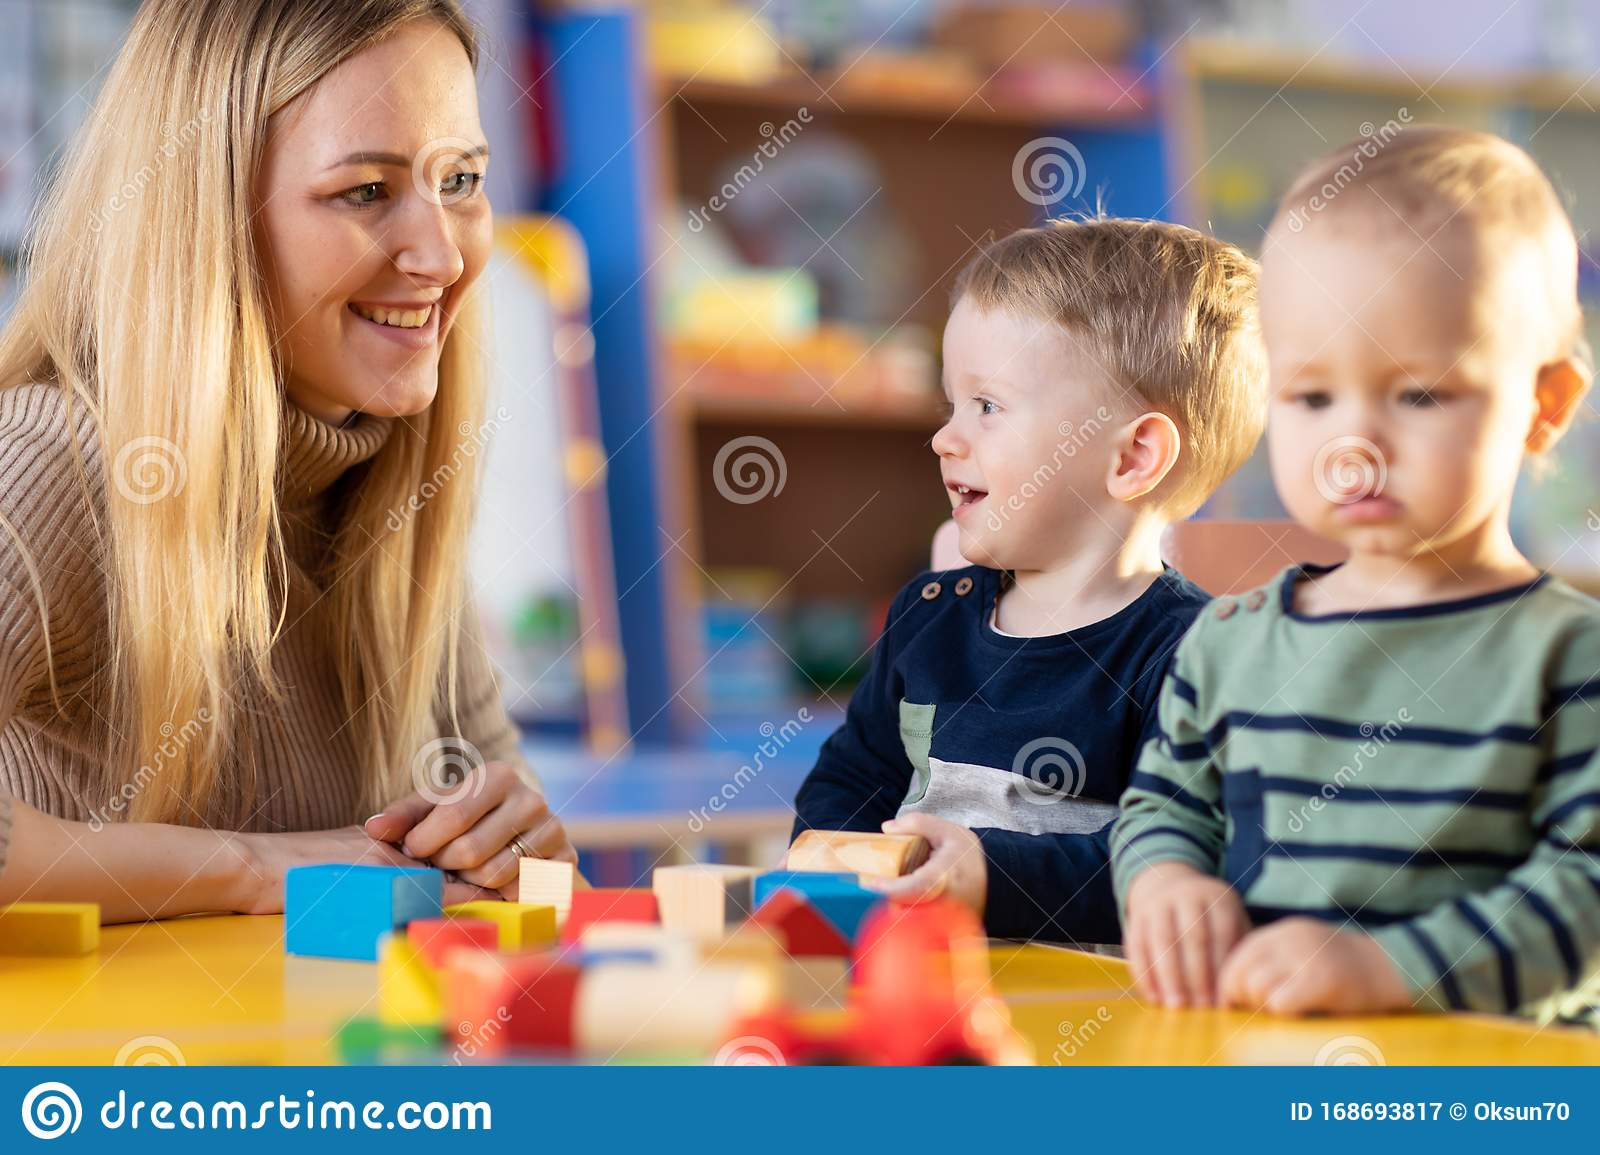 Teacher And Cute Little Girl Play With Blocks Toy In